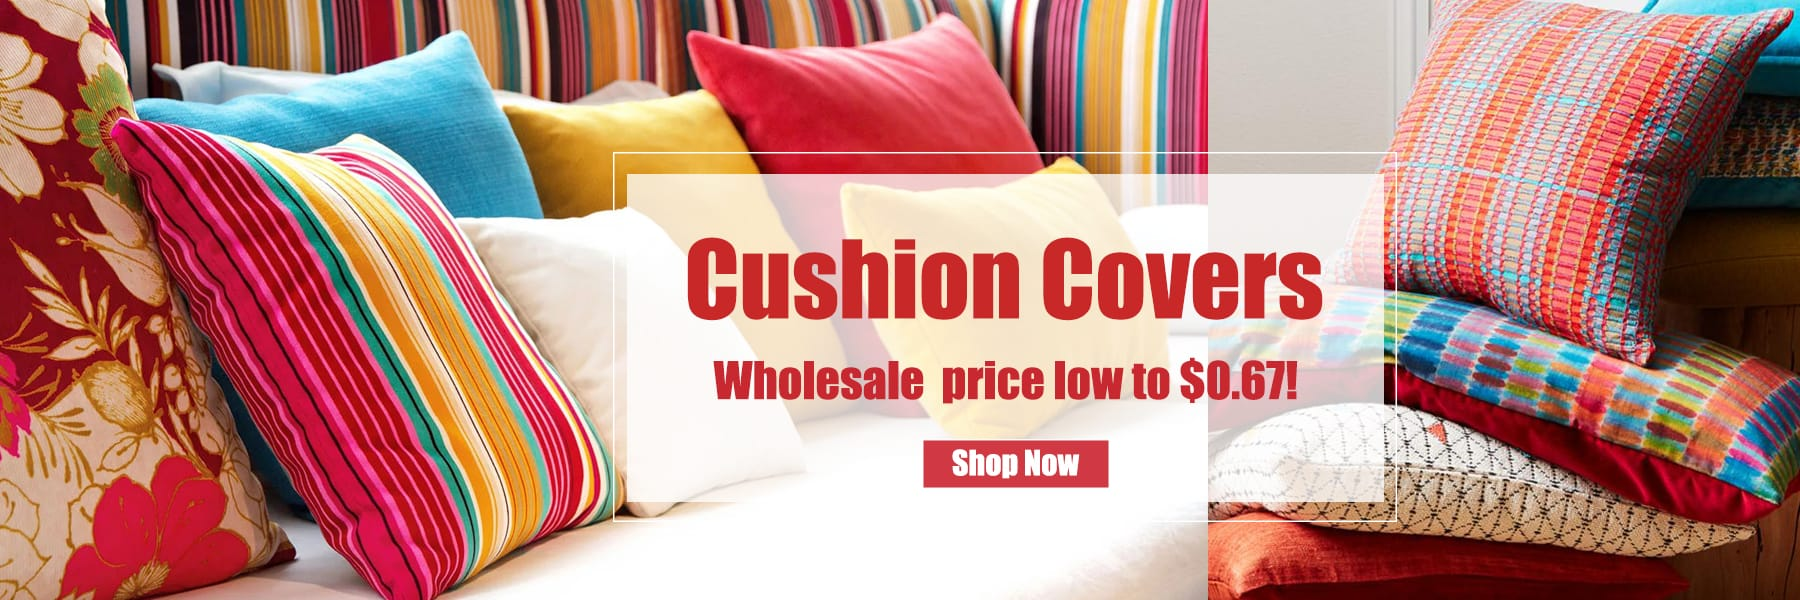 Wholesale Cushion Covers